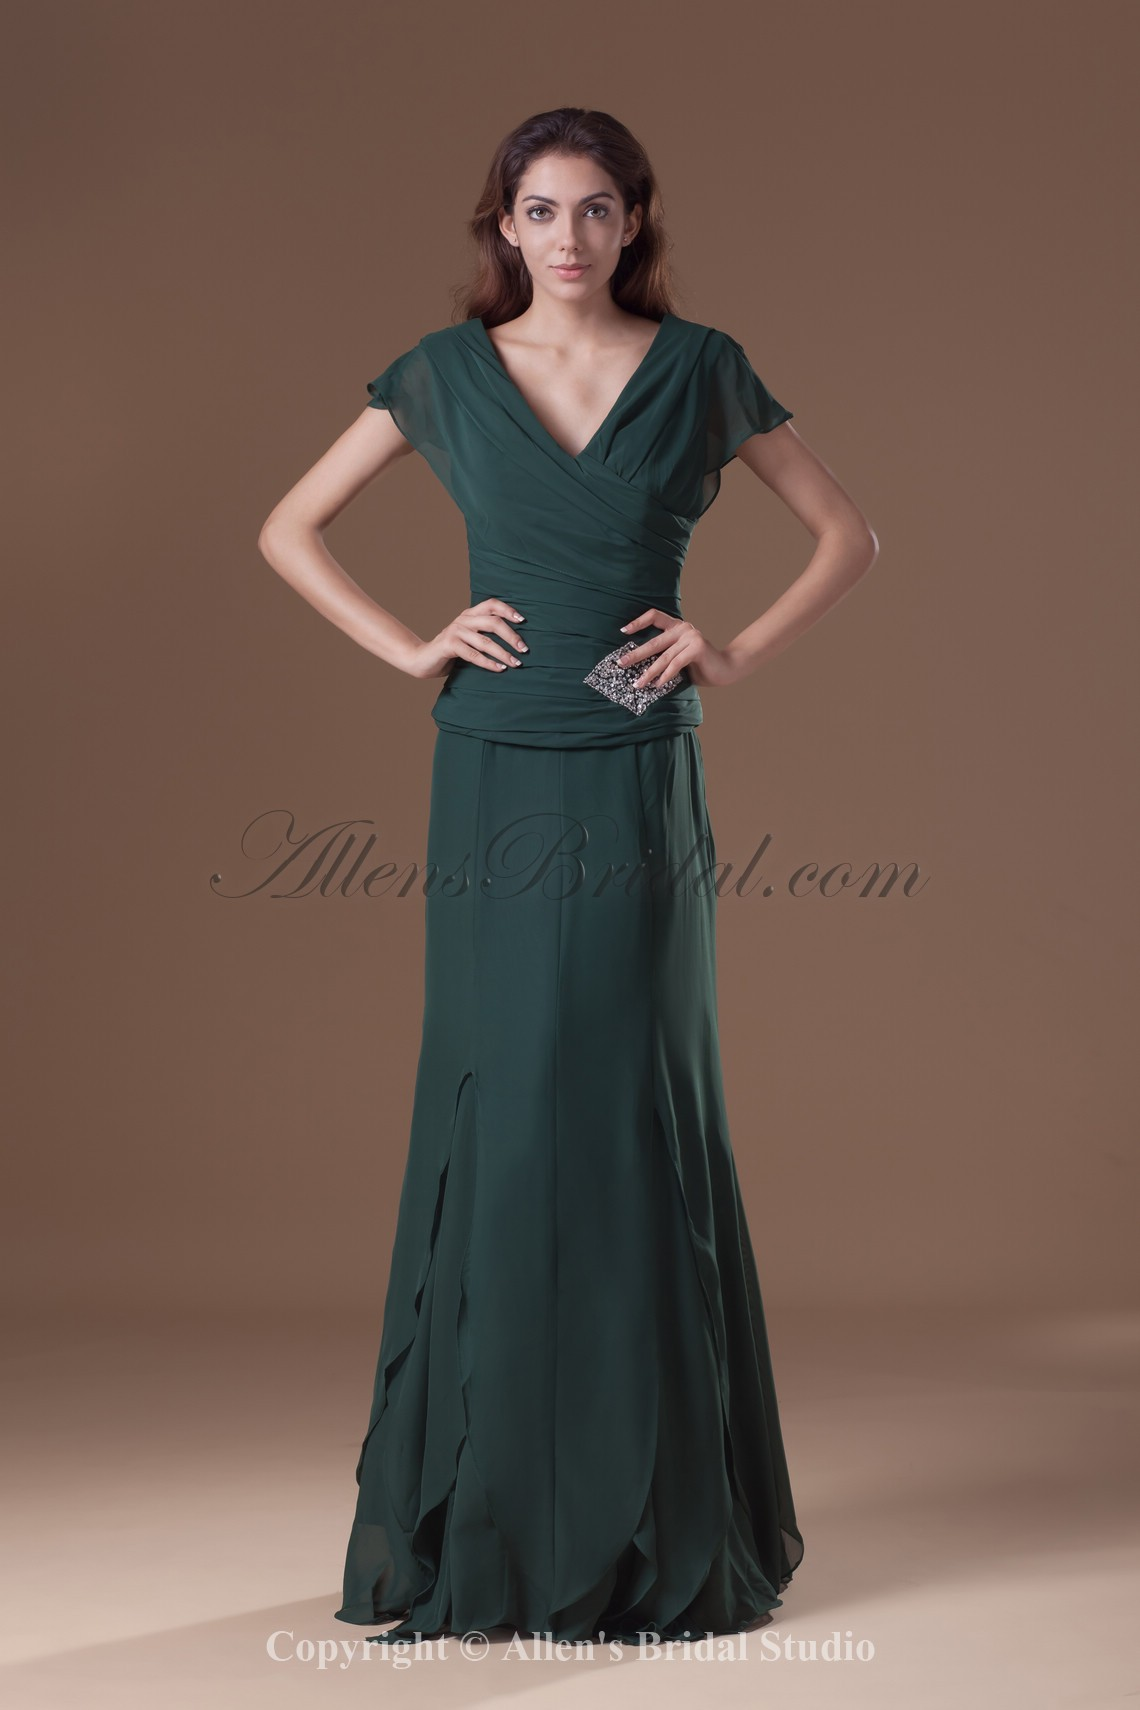 /599-4797/chiffon-v-neck-neckline-floor-length-column-cap-sleeve-prom-dress.jpg